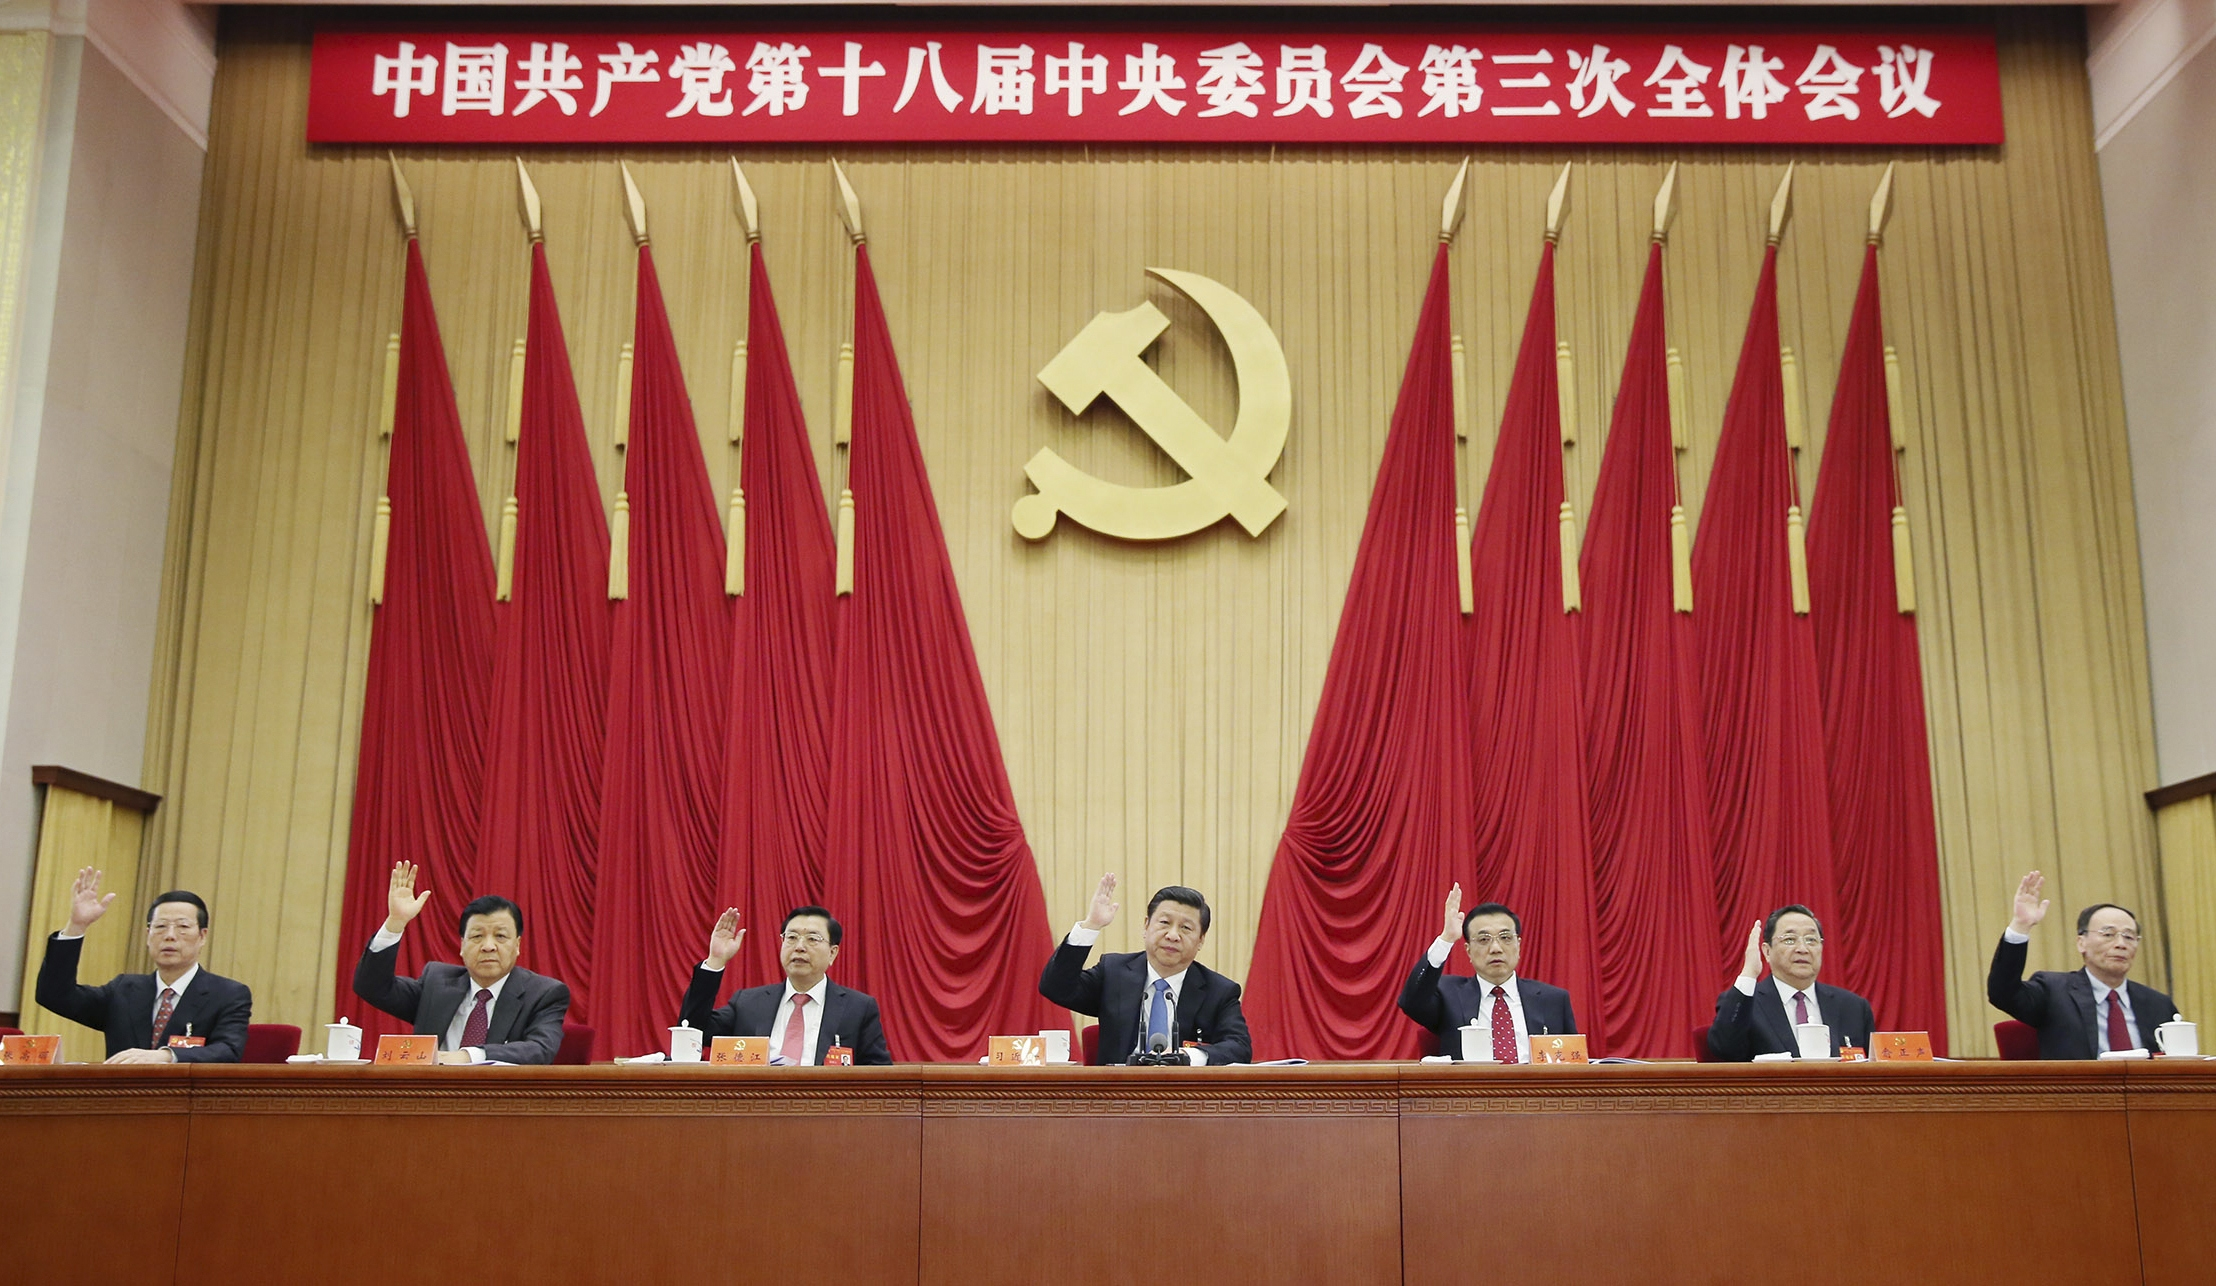 Chinese President Xi Jinping, center, and other Communist Party leaders raise their hands to vote in the Third Plenum of the 18th Central Committee of the Communist Party of China in Beijing on Tuesday.